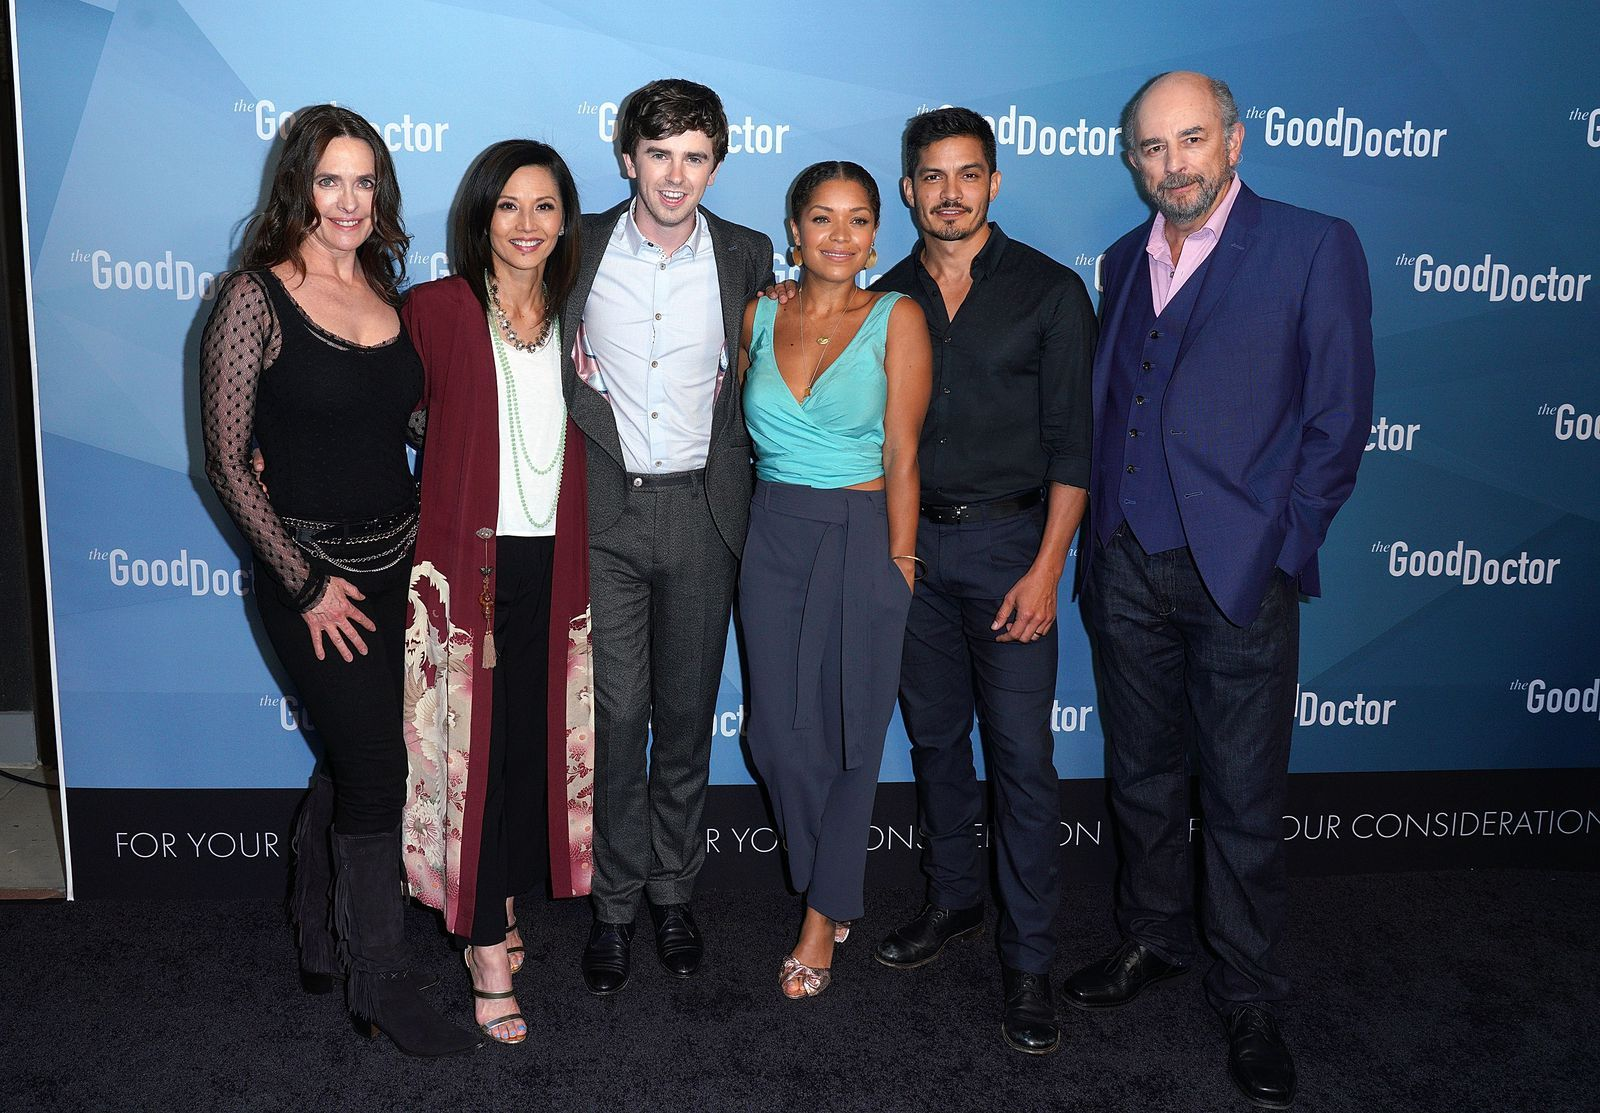 Everything You Need To Know About The Good Doctor Season 2